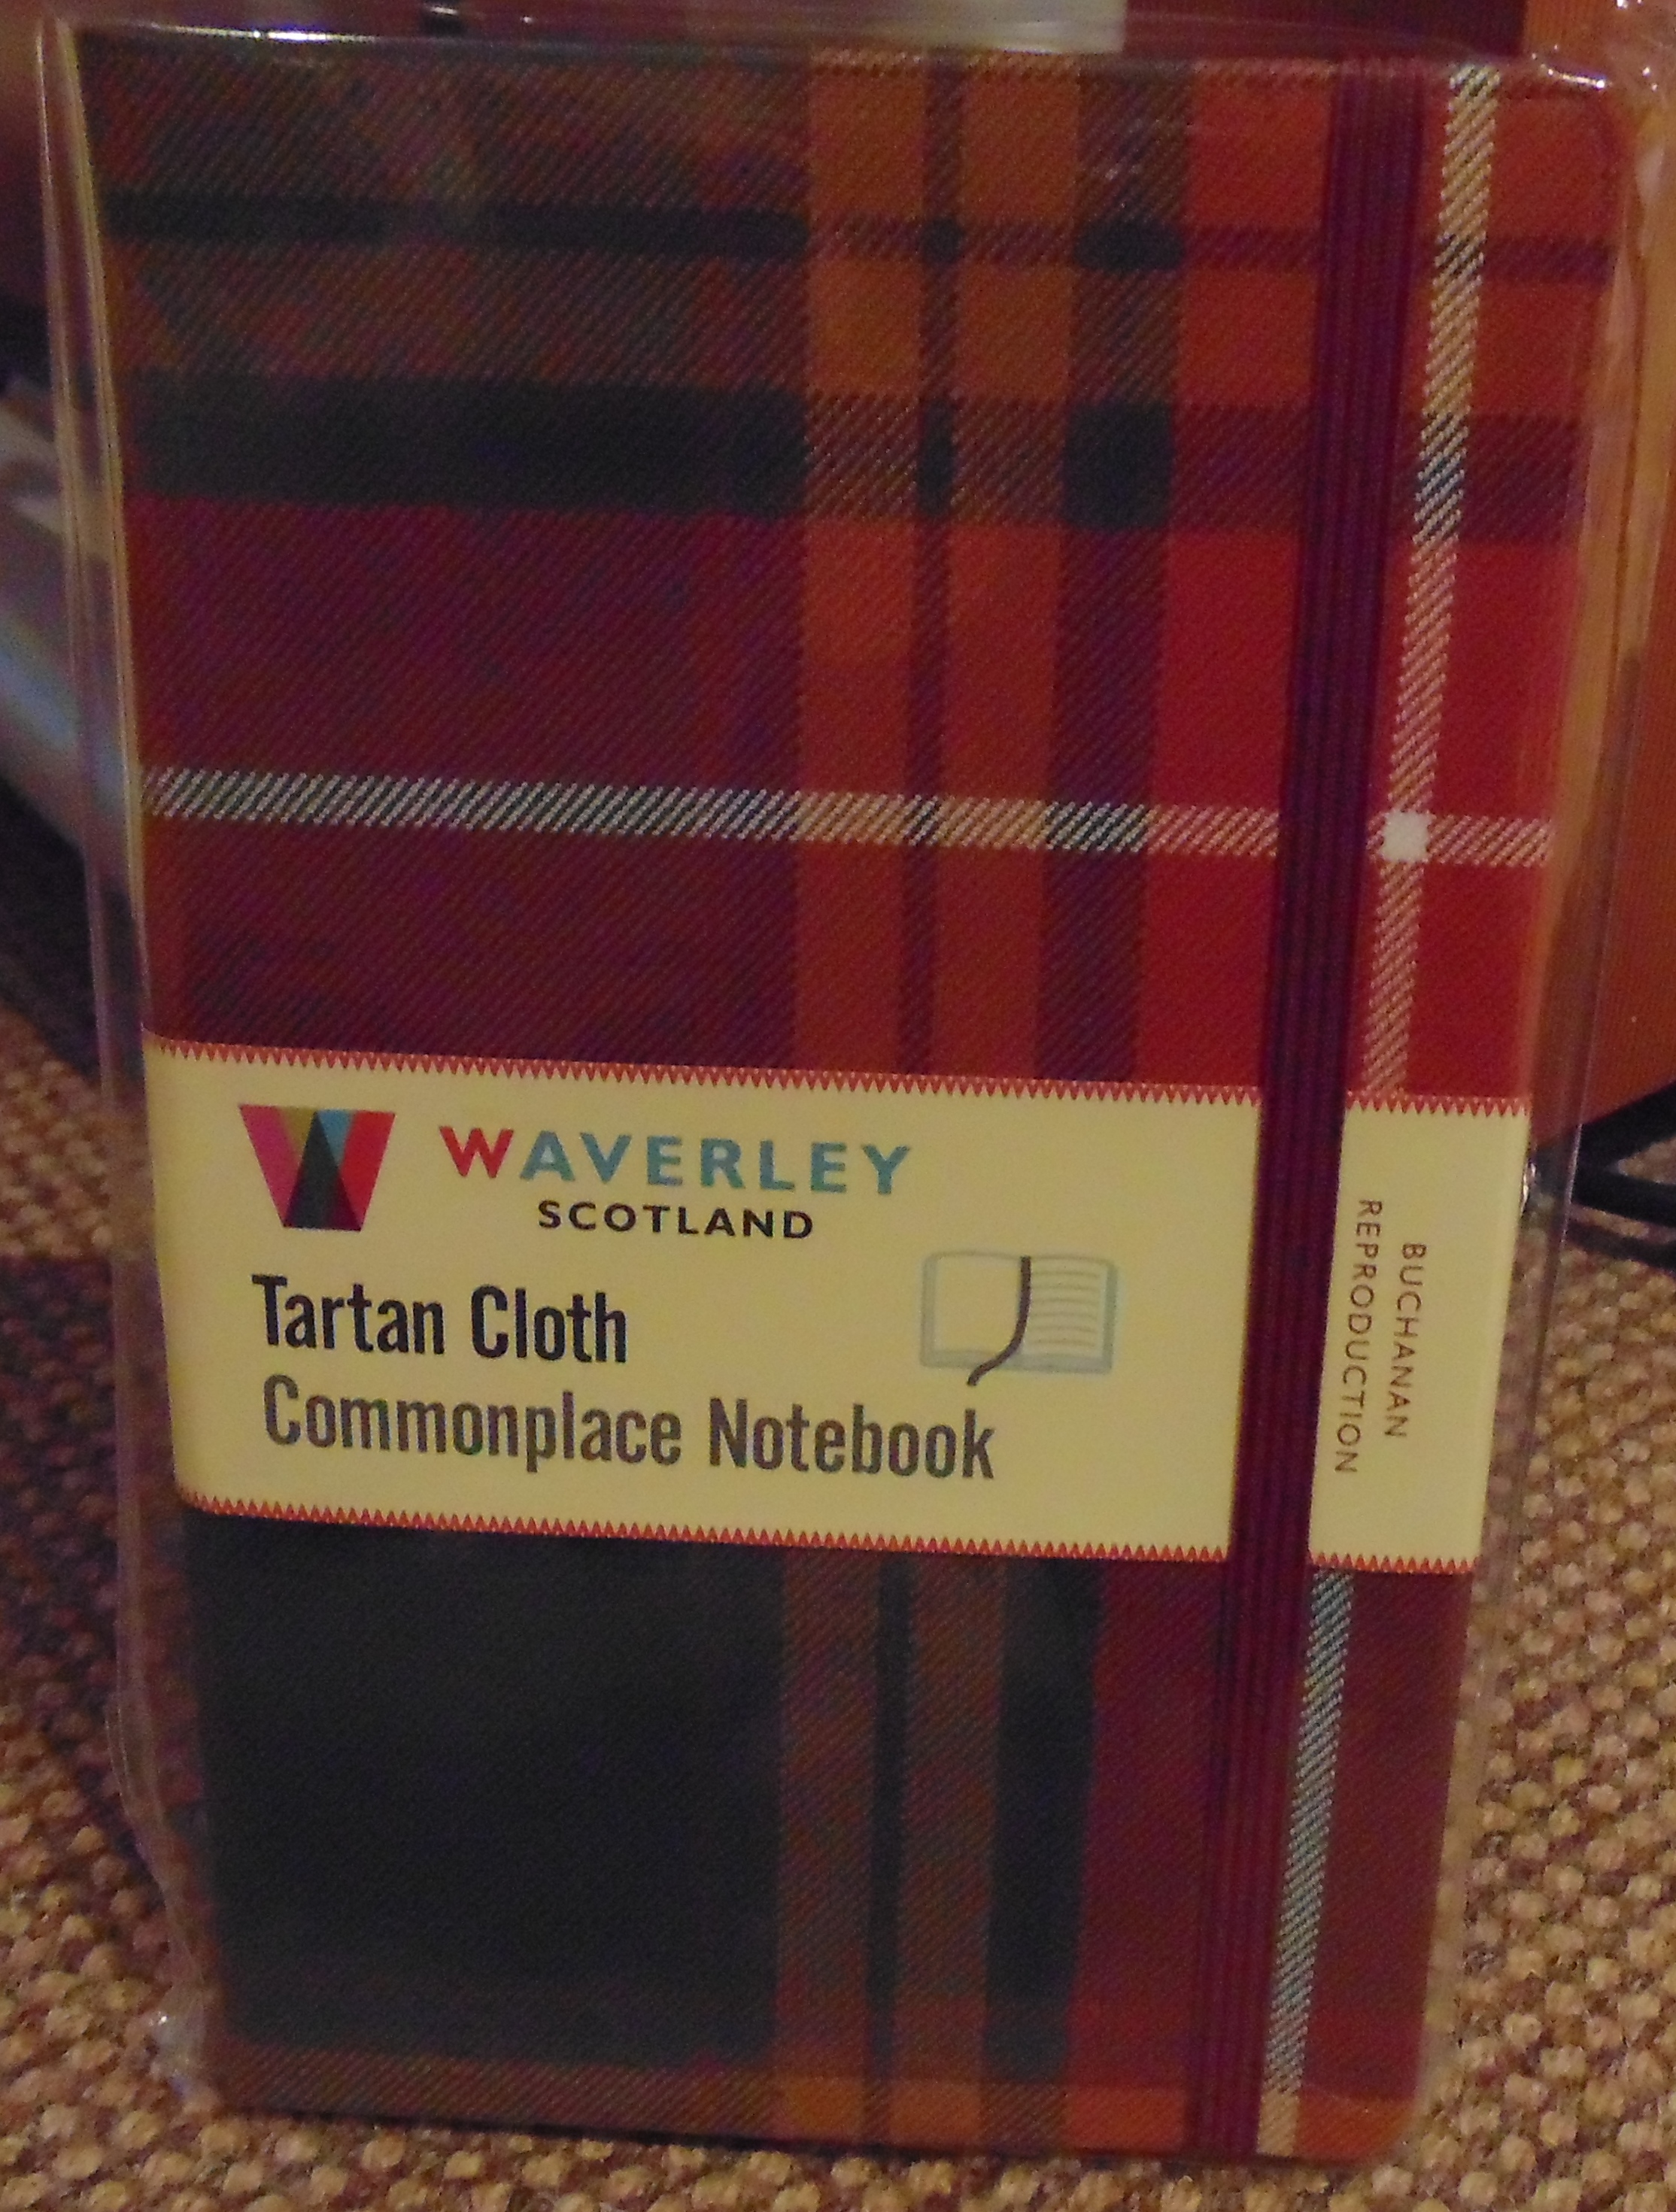 Tartan Cloth Commonplace Notebook (Large)